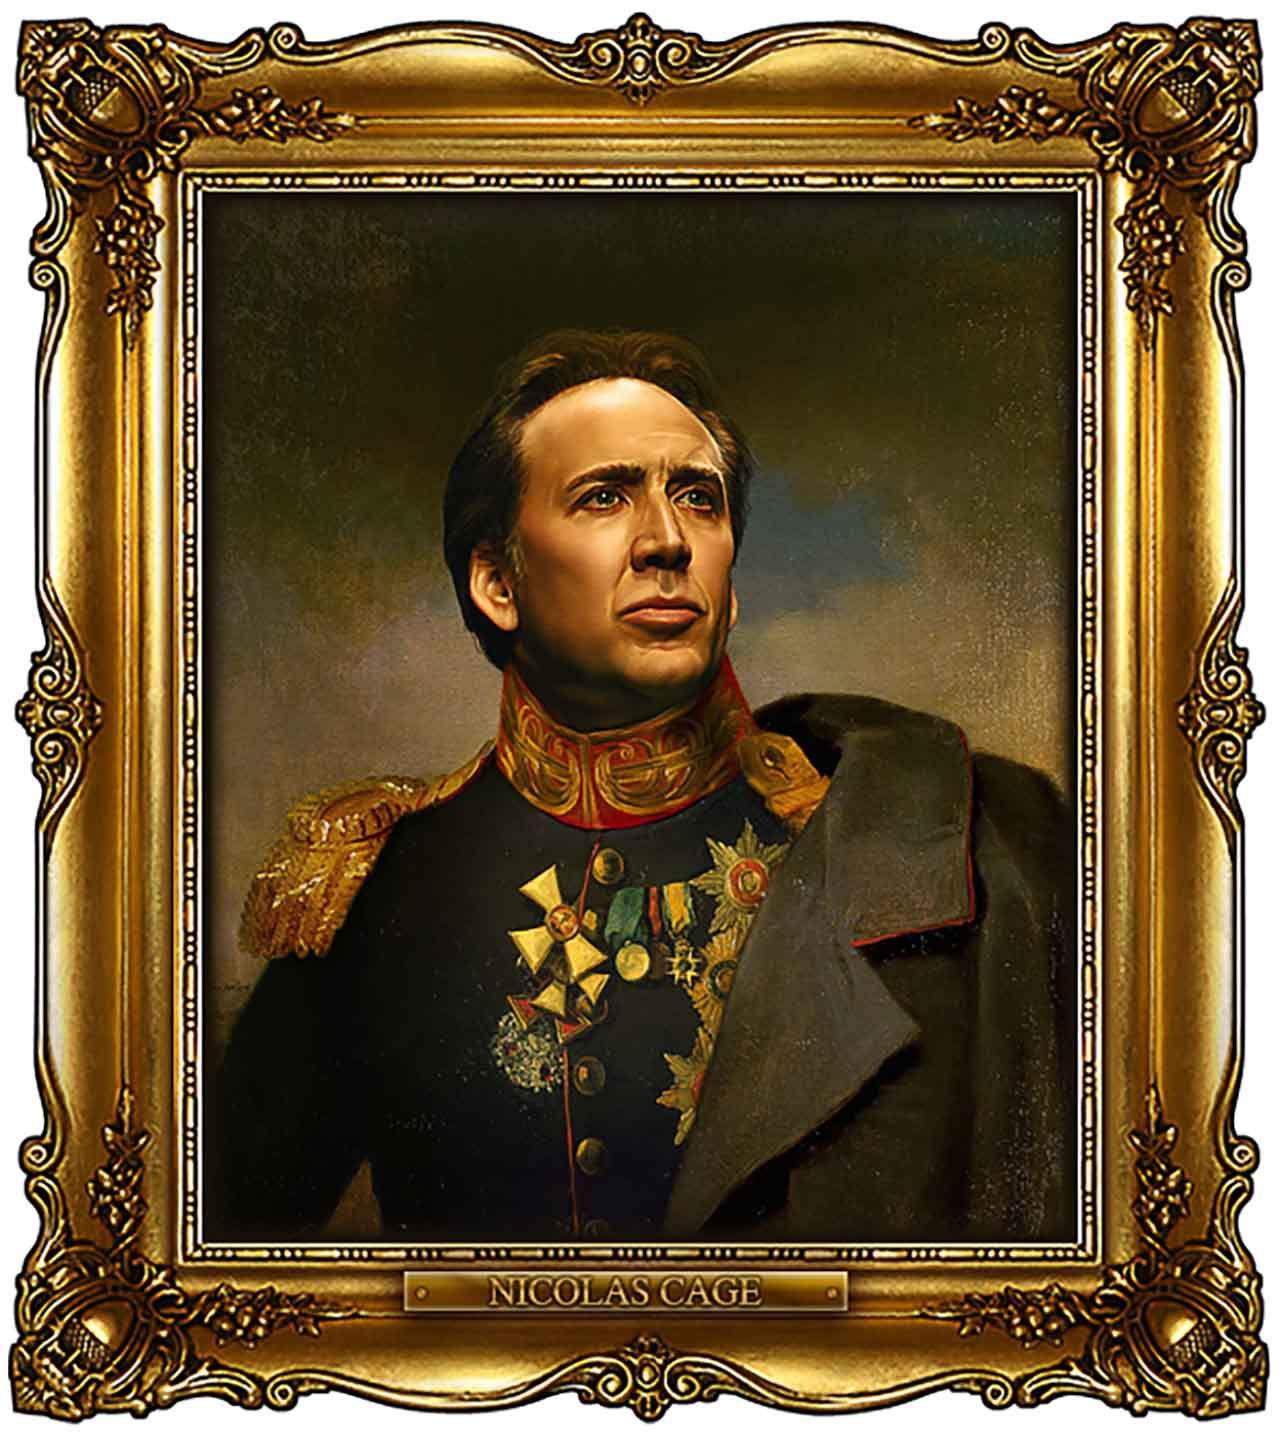 Artist Turns Famous Actors Into Russian Generals - Nicolas Cage